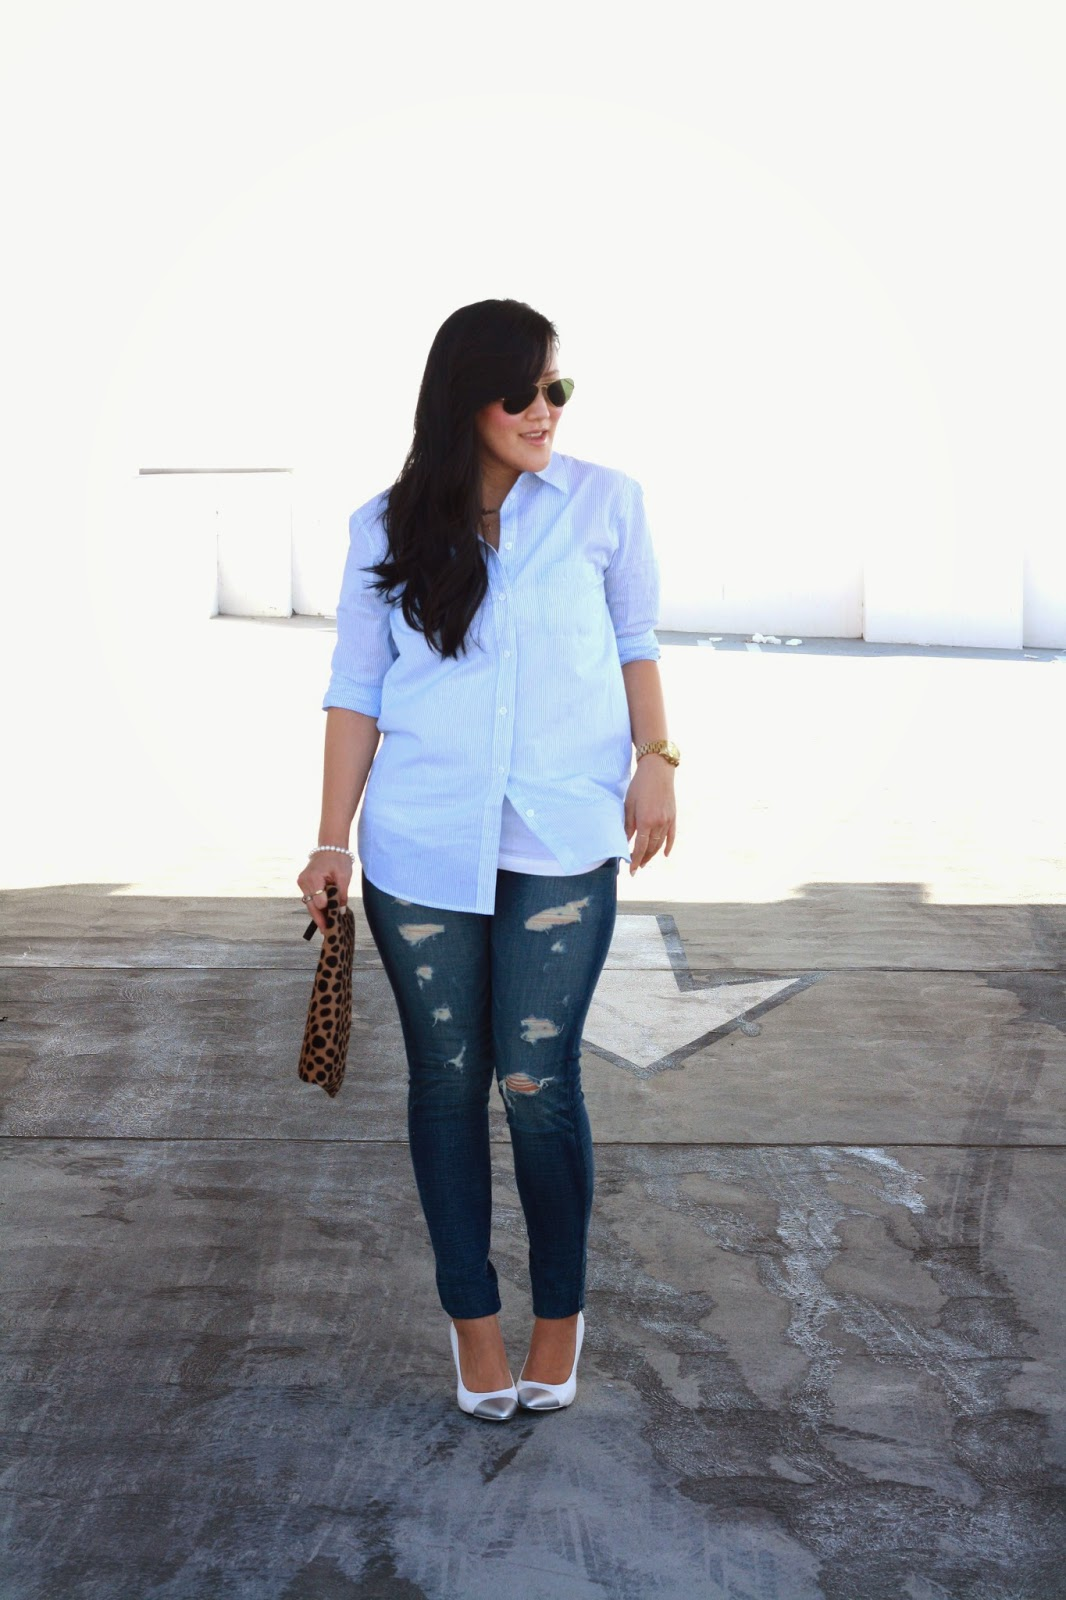 simplyxclassic, equipment top, american eagle denim, clare vivier clutch, leopard clutch, ray ban, ootd, blogger, style blogger, orange county, southern california